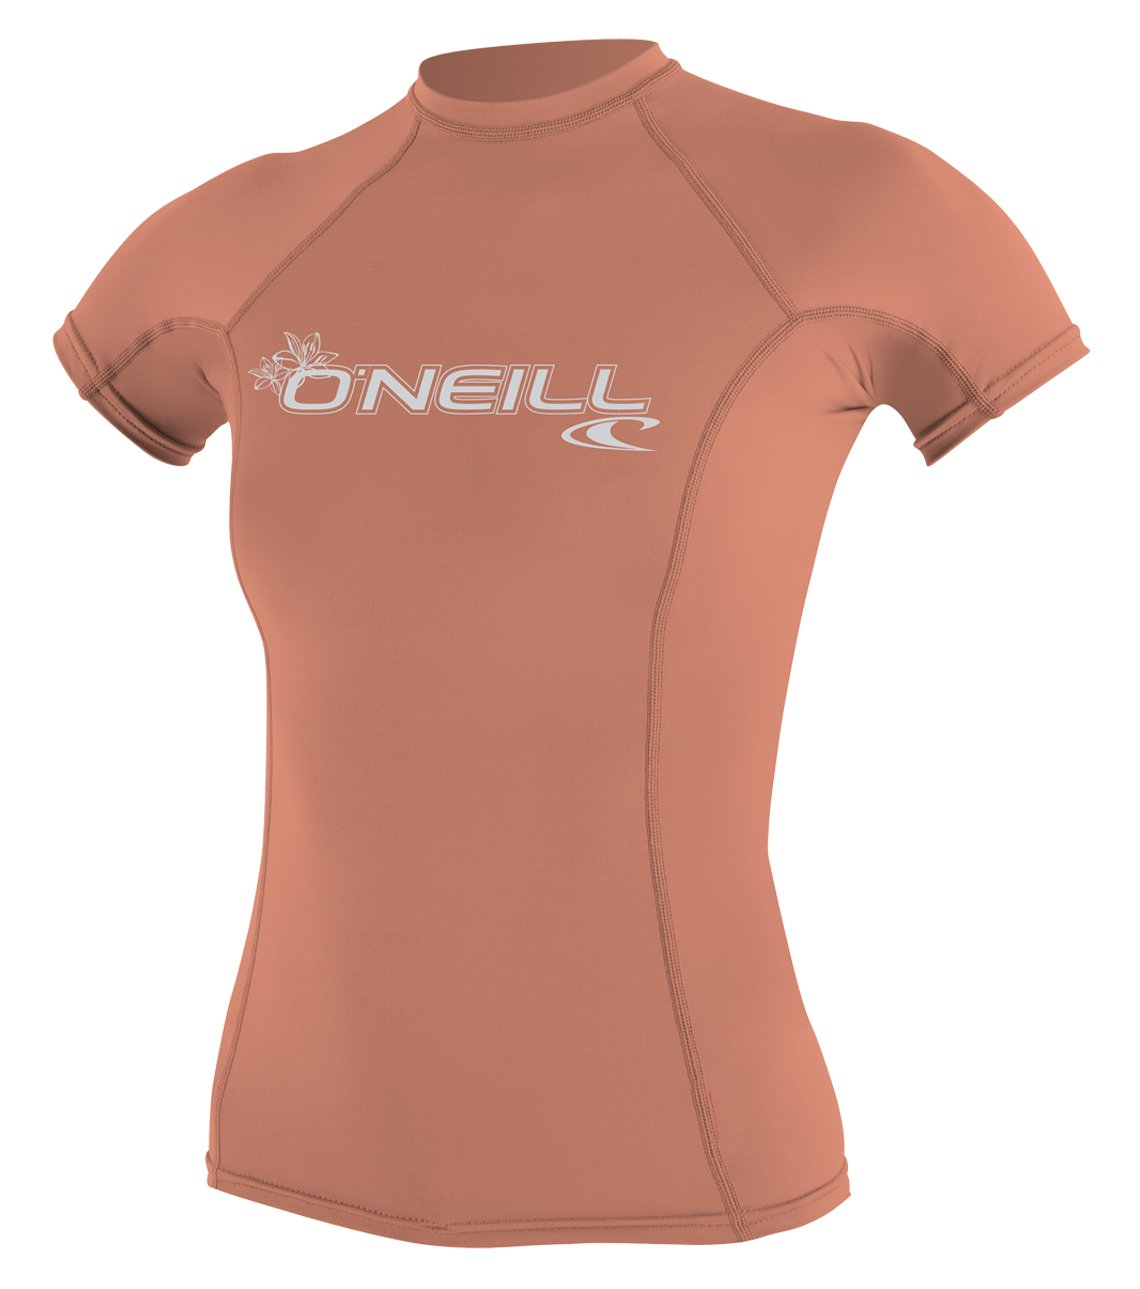 O'Neill Wetsuits O'Neill Women's Basic Skins UPF 50+ Short Sleeve Rash Guard, Light Grapefruit, Medium by O'Neill Wetsuits